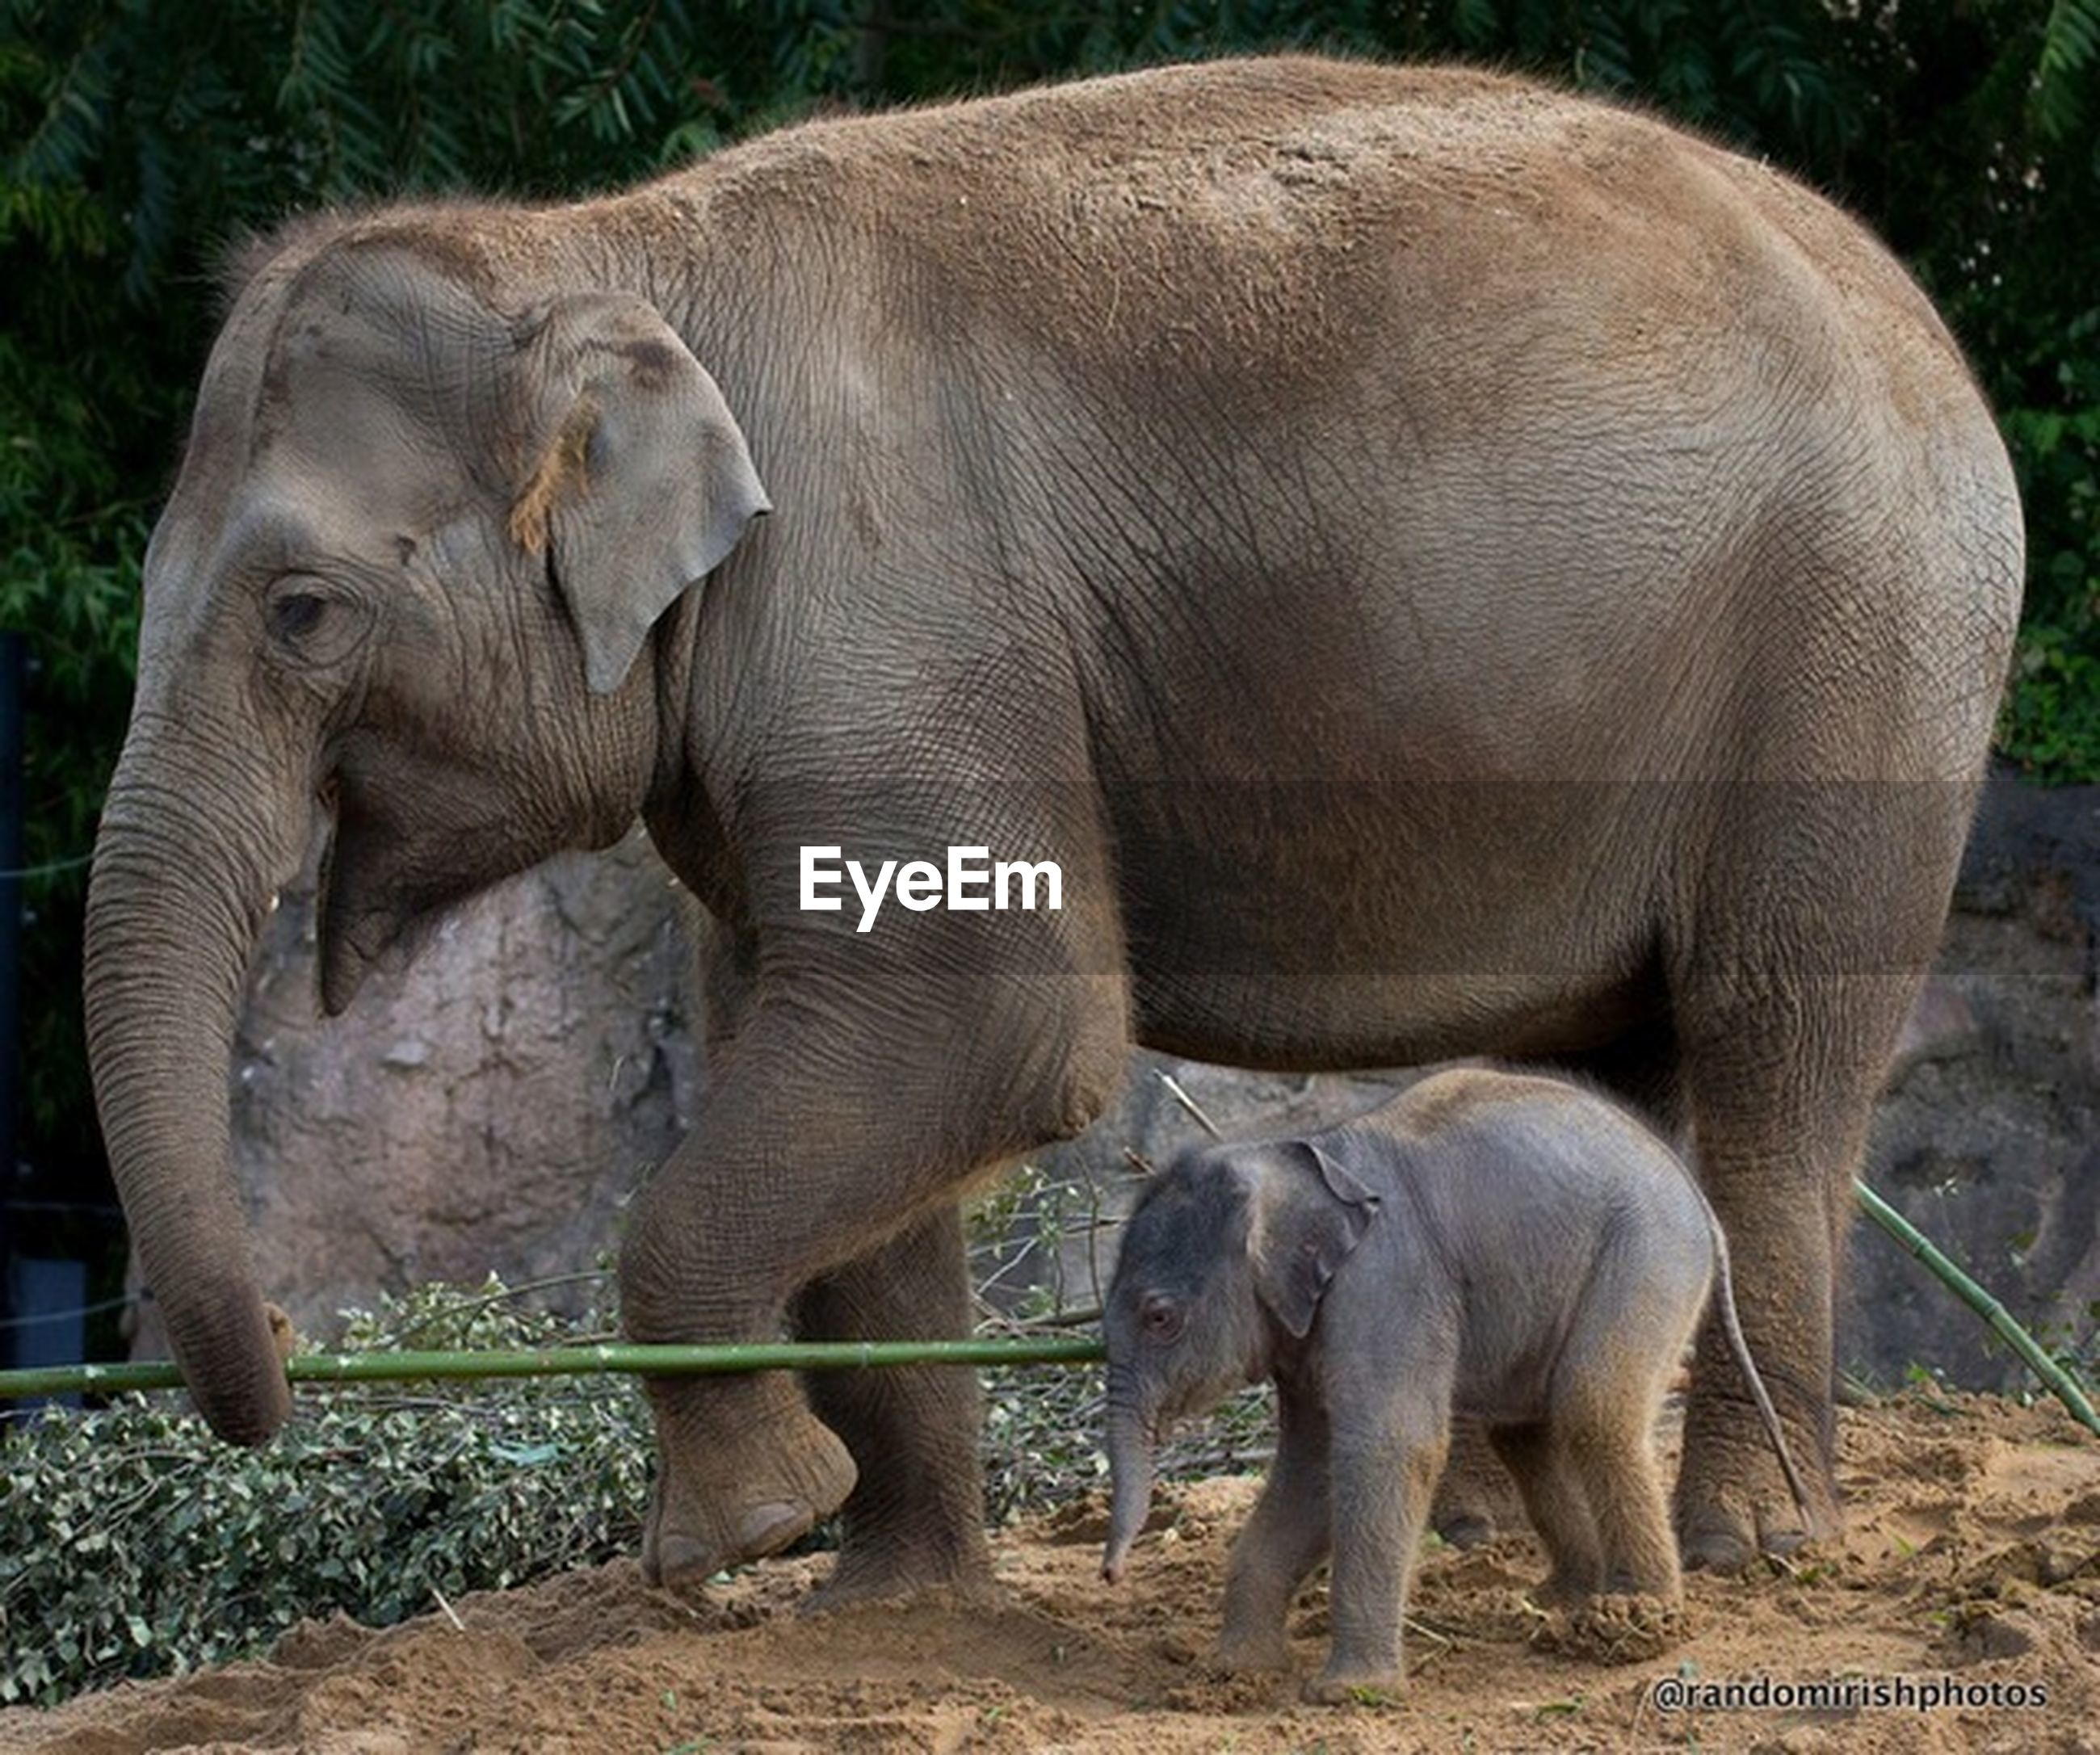 animal themes, mammal, wildlife, animals in the wild, standing, livestock, field, two animals, animal family, togetherness, young animal, herbivorous, elephant, nature, zoo, full length, three animals, sheep, grass